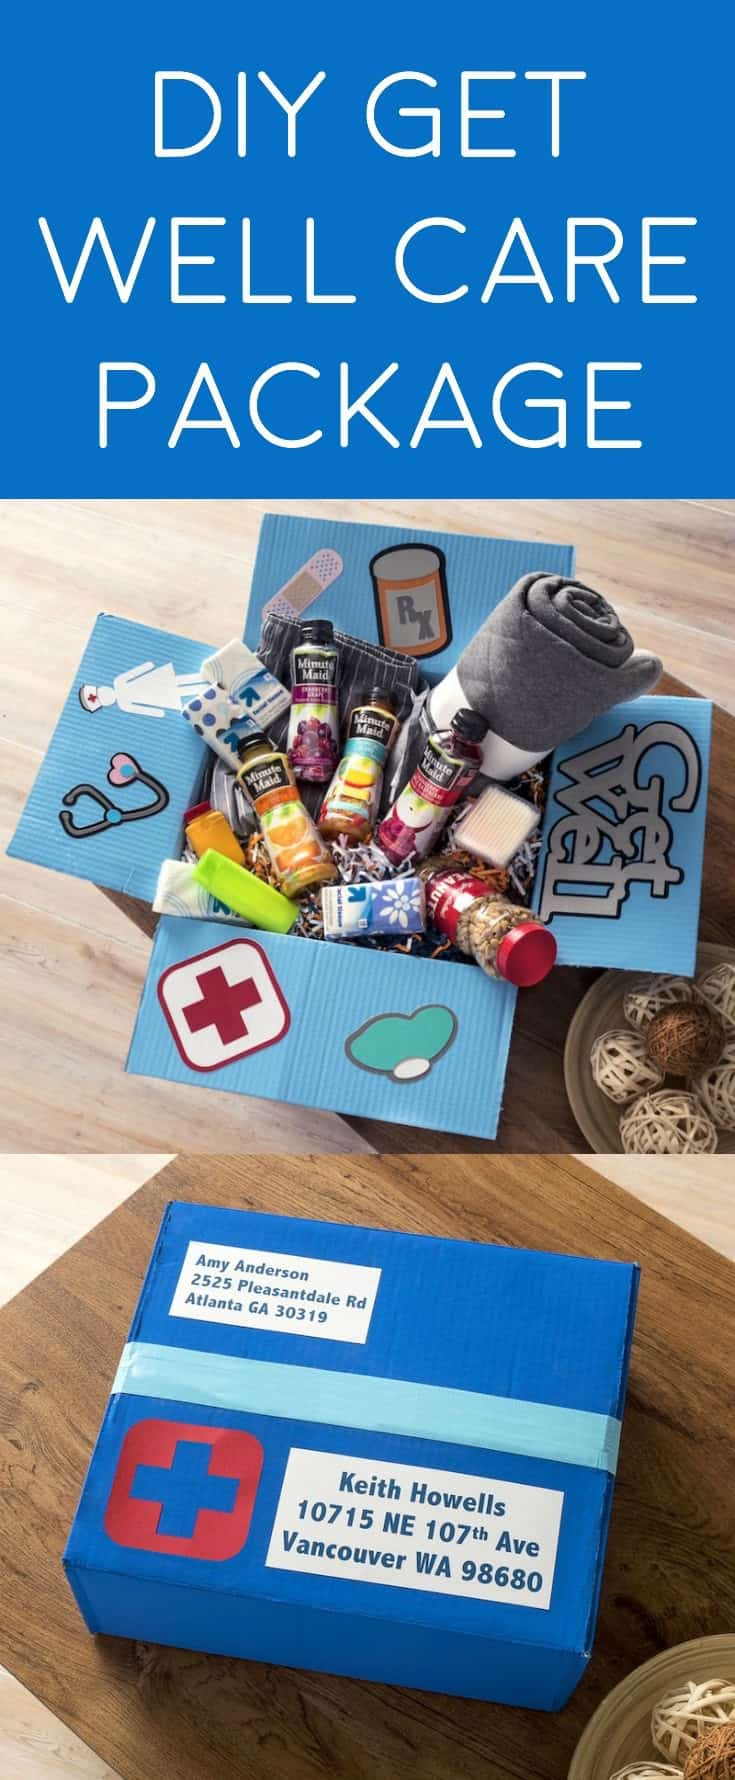 Diy Get Well Care Package Doingood Mod Podge Rocks